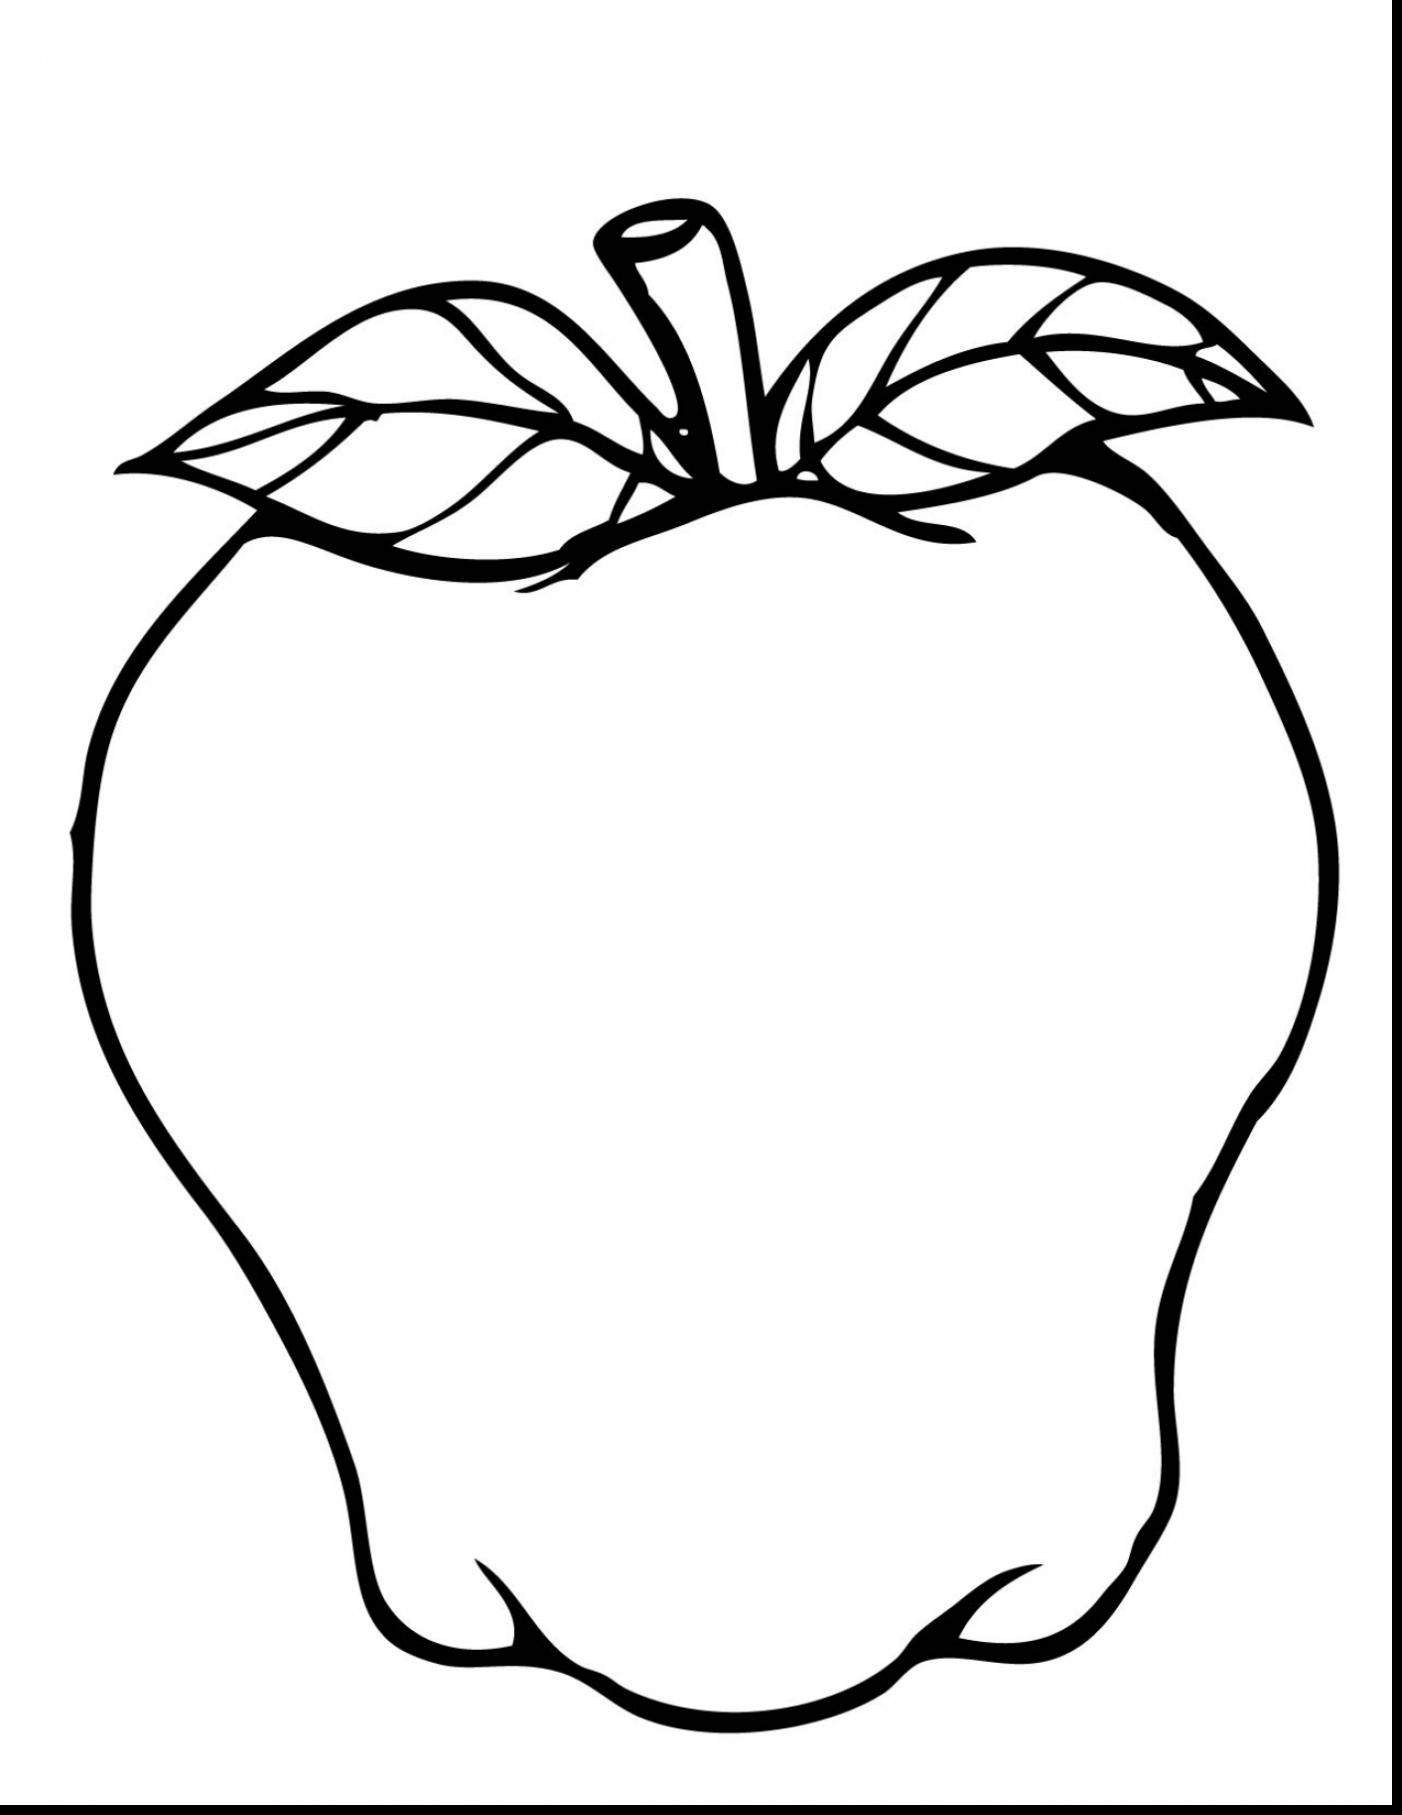 Astonishing Apple Tree Coloring Pages With Apple Tree